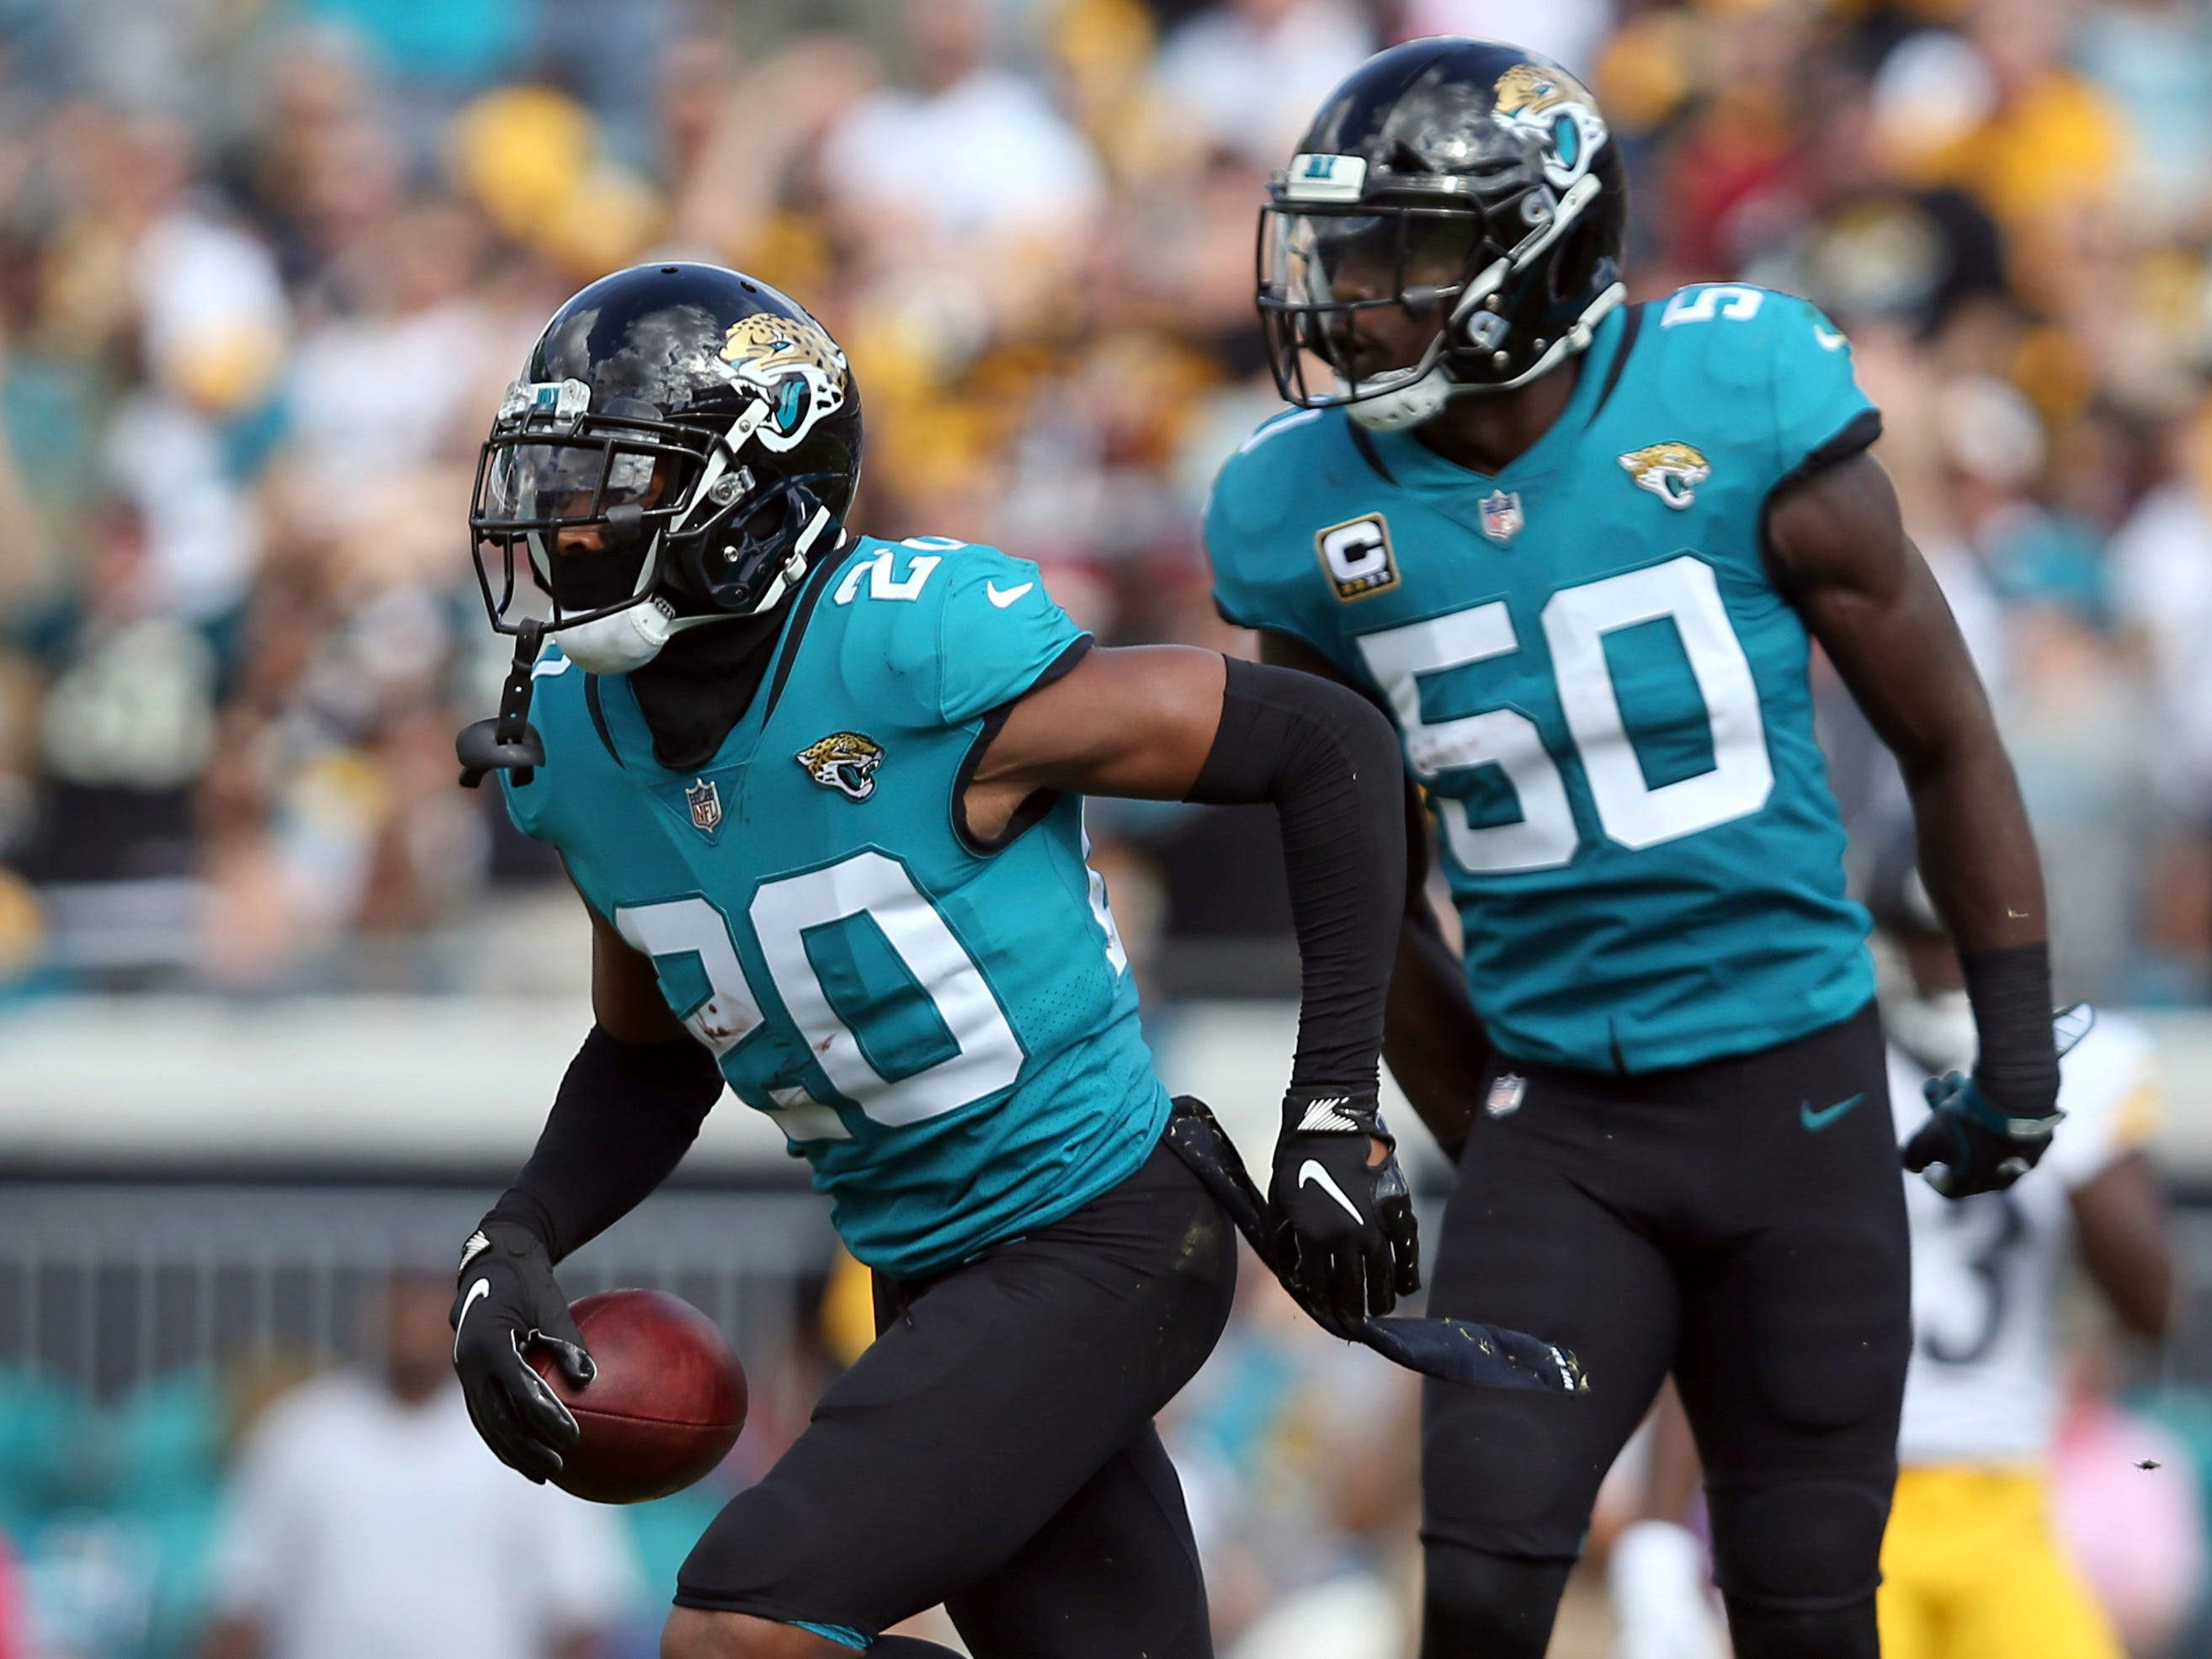 25. Jaguars (24): Jalen Ramsey is still balling and still talking even as front office tries to douse rumors that he'll be on trade block in a few months.